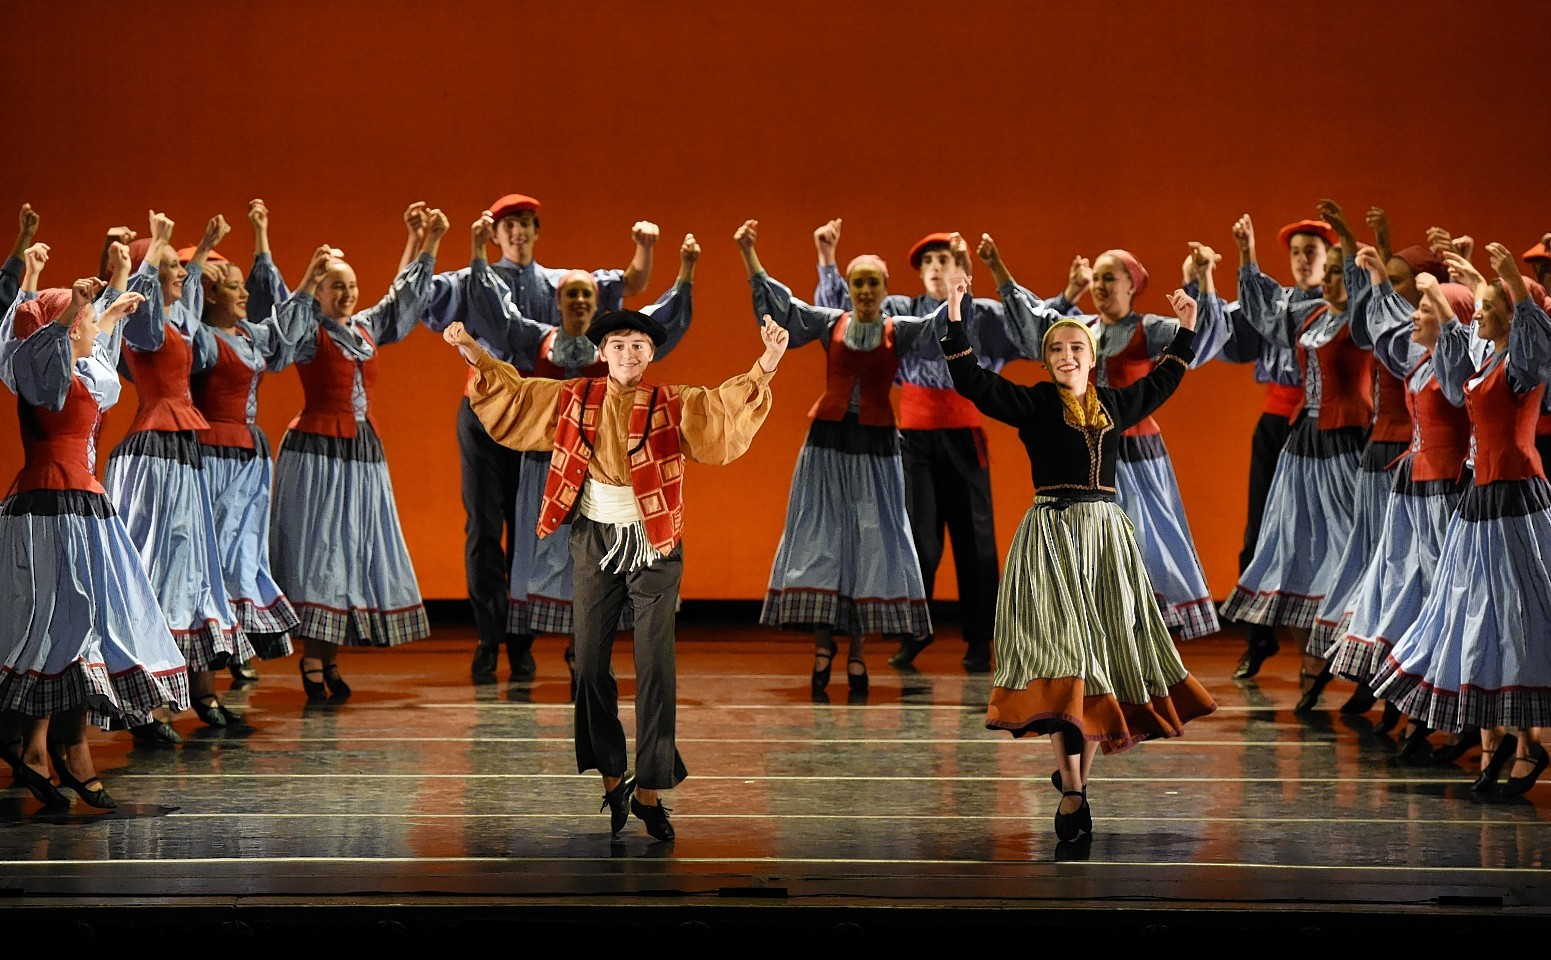 Kresala Basque Dance Company performing at AIYF International Variety Gala at HMT. Pictures by Kevin Emslie